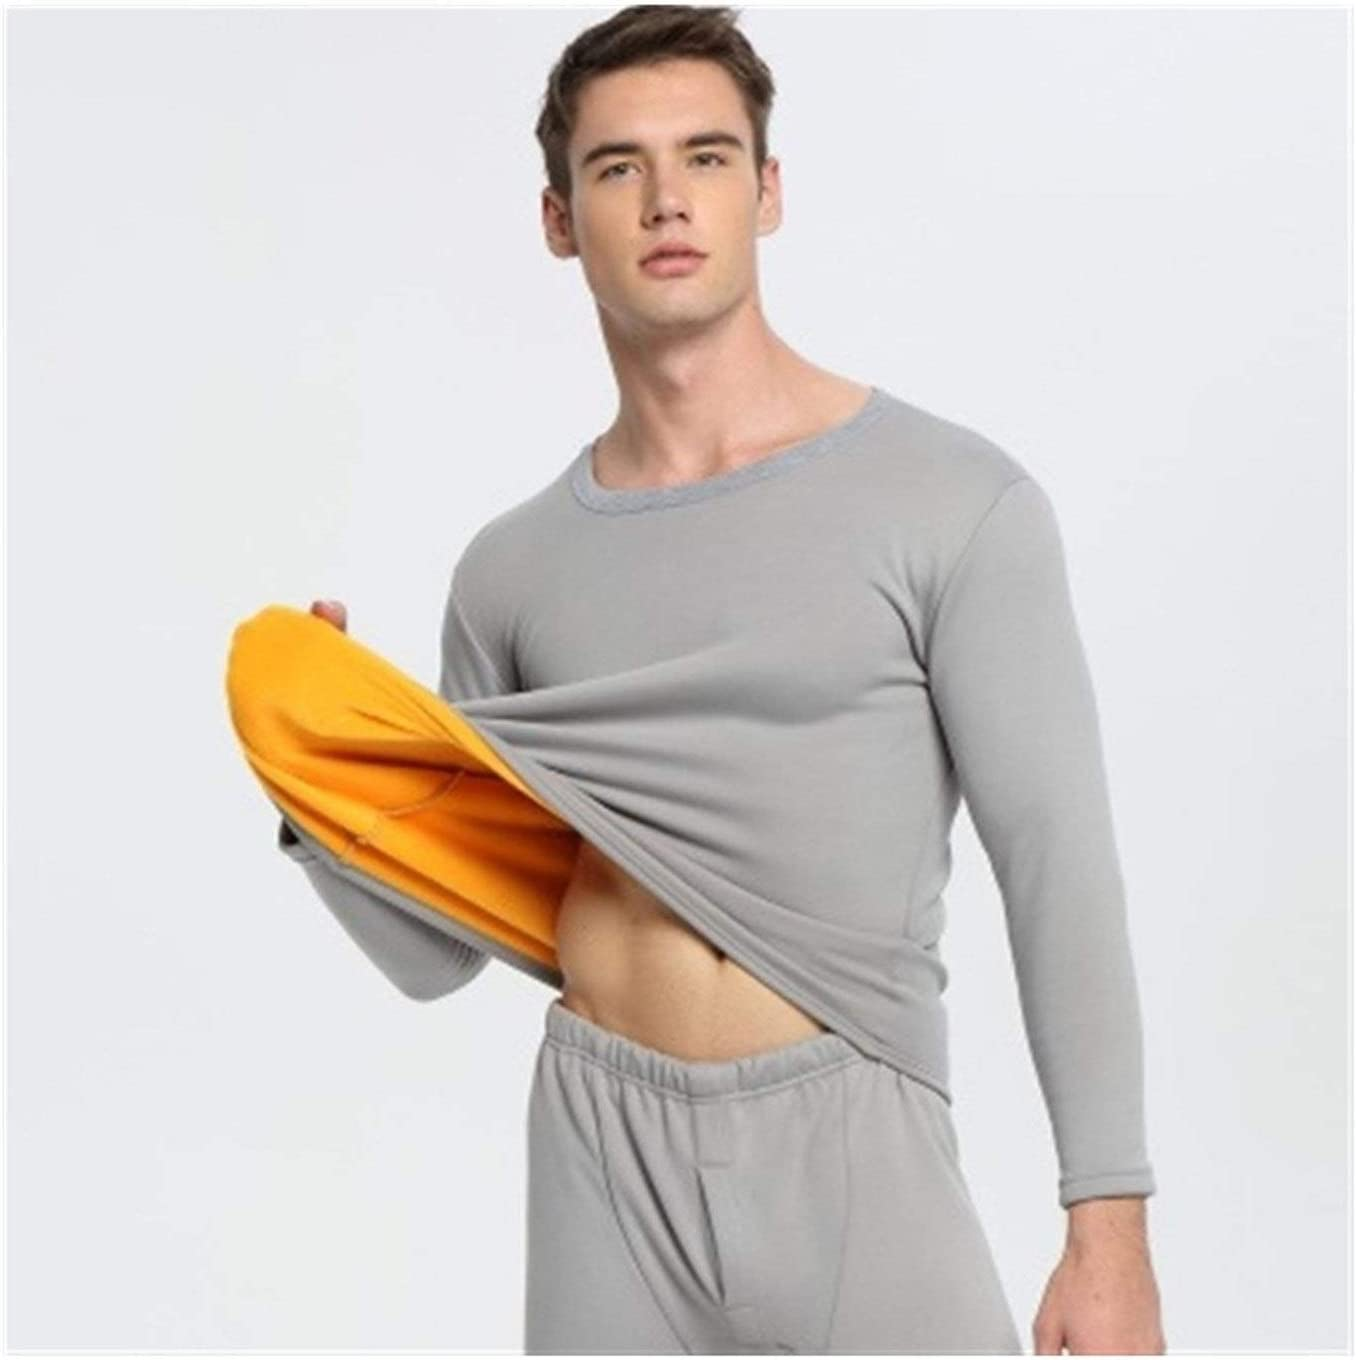 QWERBAM Winter Woman Clothes Thermal Underwear Thermo Men Couple Clothes Keep Warm (Color : Men Light Gray, Size : 3XL.)